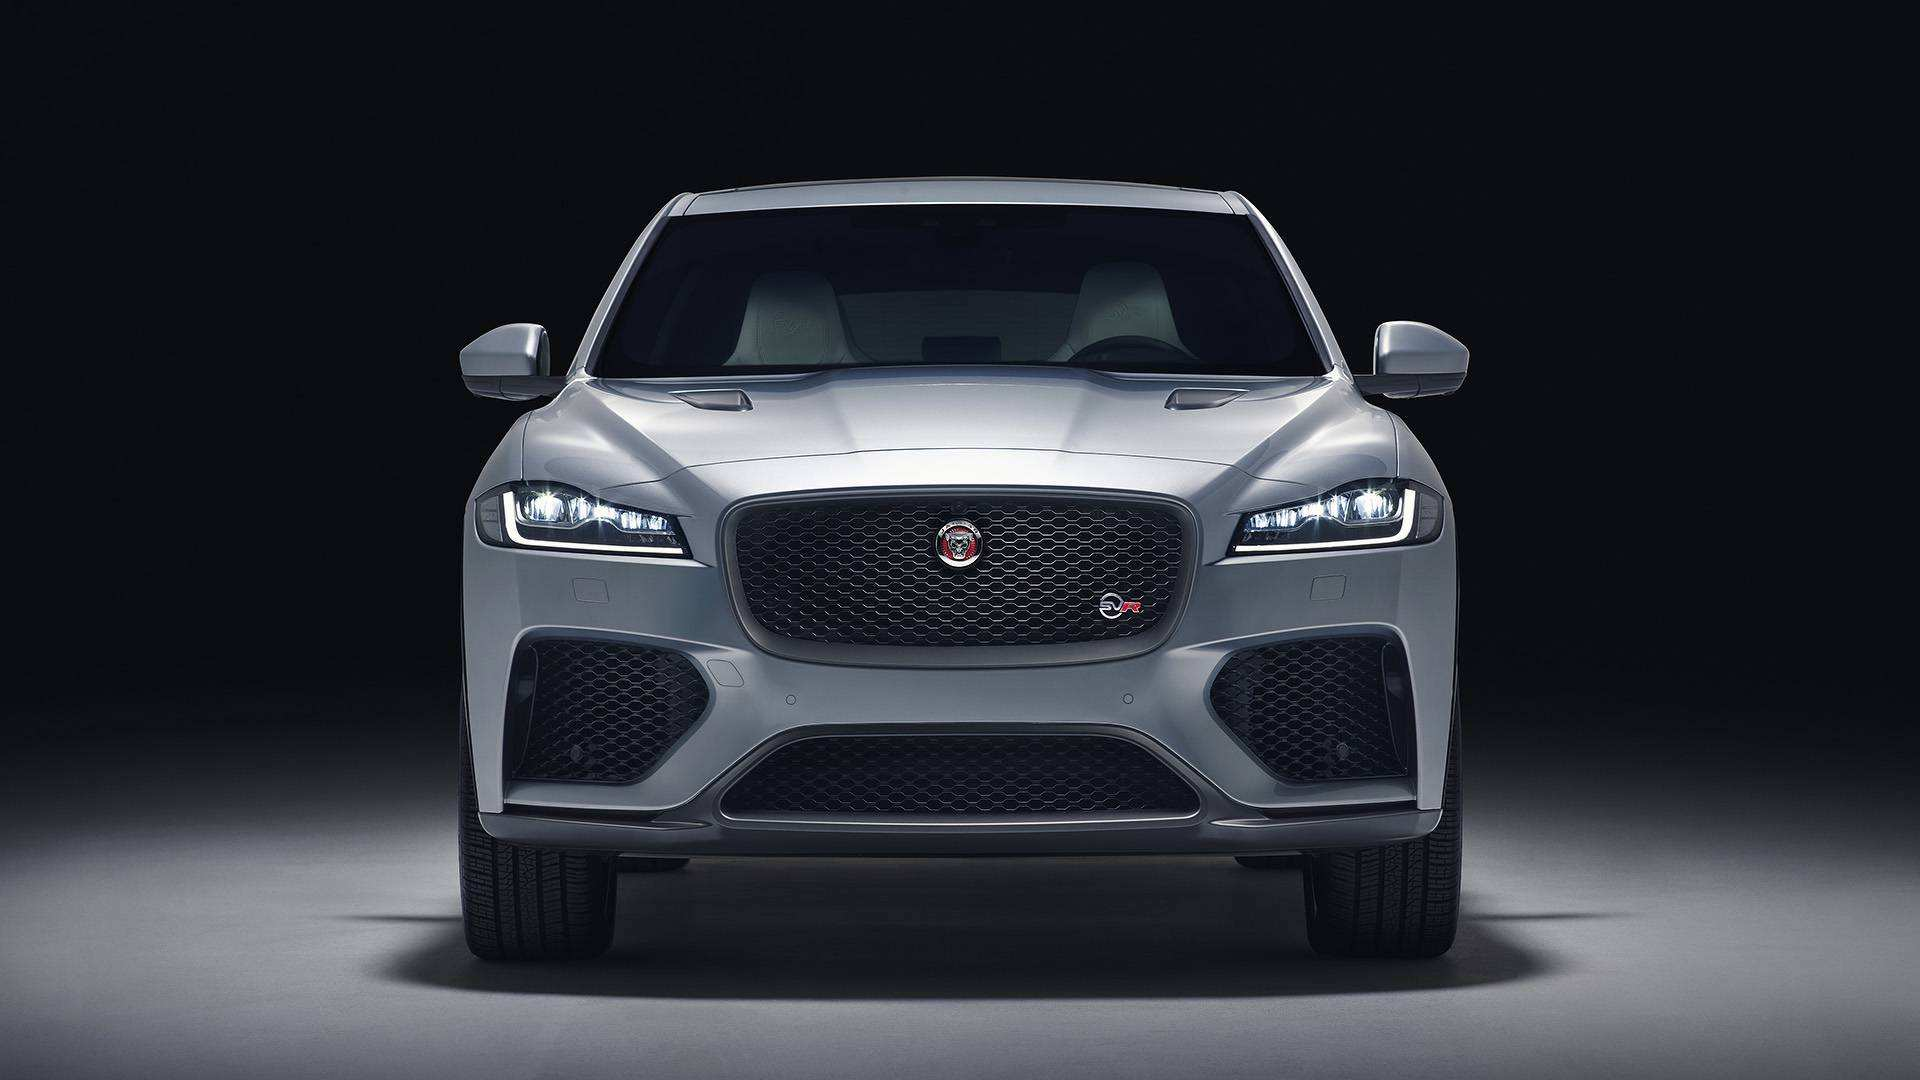 79 A Jaguar I Pace 2020 Model 2 Photos